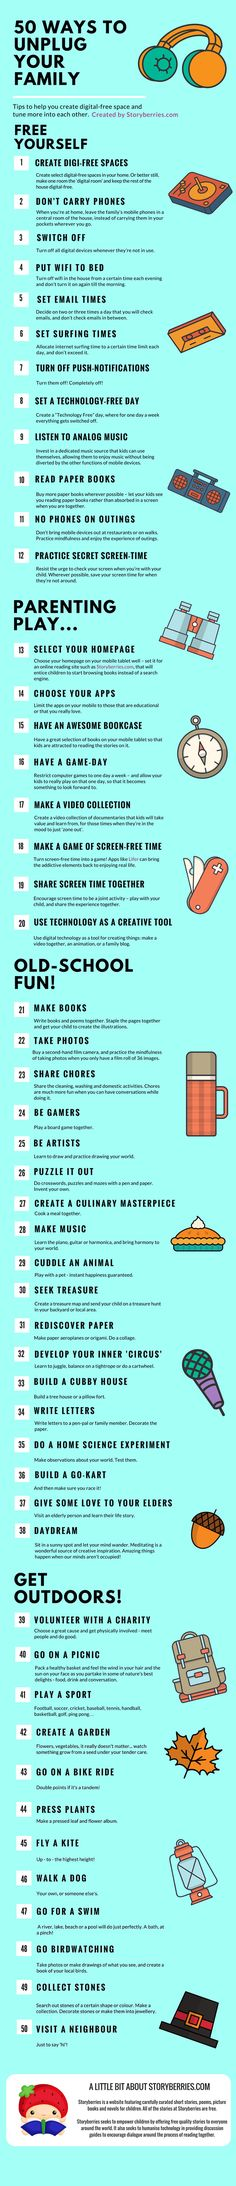 Fridge Chart of 50 Ways to Digital Detox Your Family by Storyberries